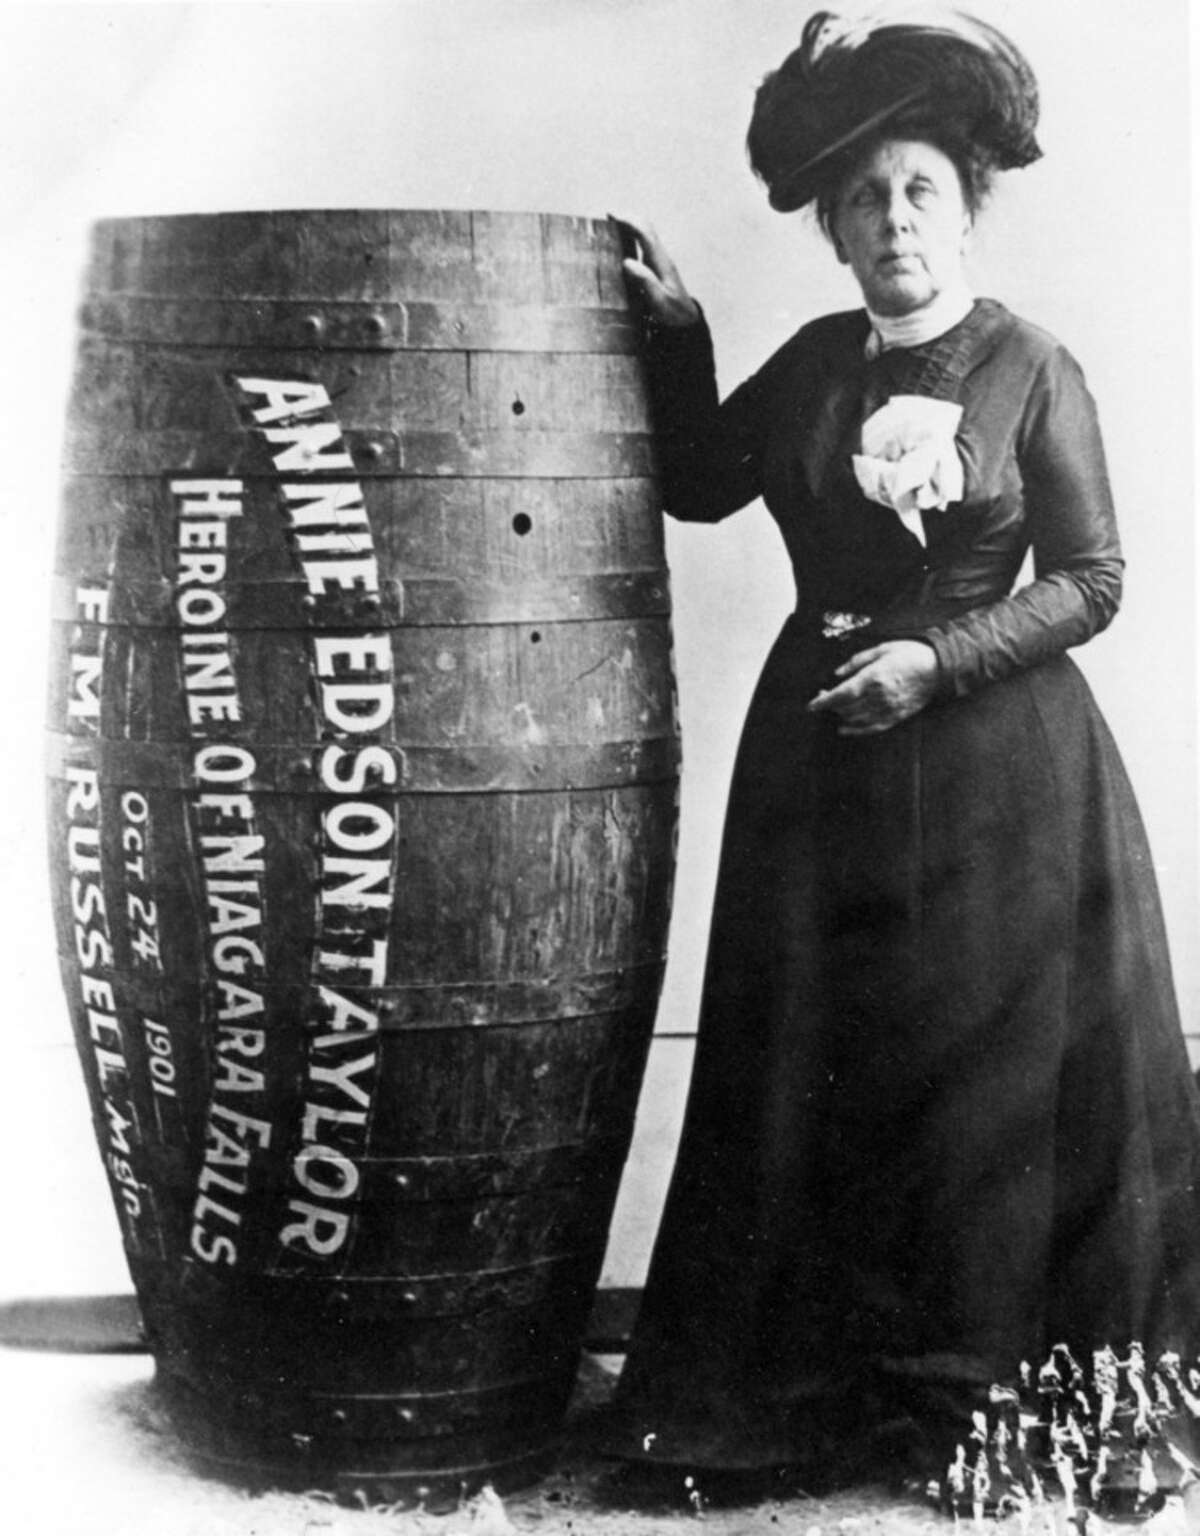 Here are a few other times Niagara Falls stunts have made headlines. Photograph Annie Edson Taylor, the first person to survived a trip over Niagara Falls in a barrel on 24 October 1901. By Unknown - Francis J. Petrie Photograph Collection, Public Domain, https://commons.wikimedia.org/w/index.php?curid=4392220